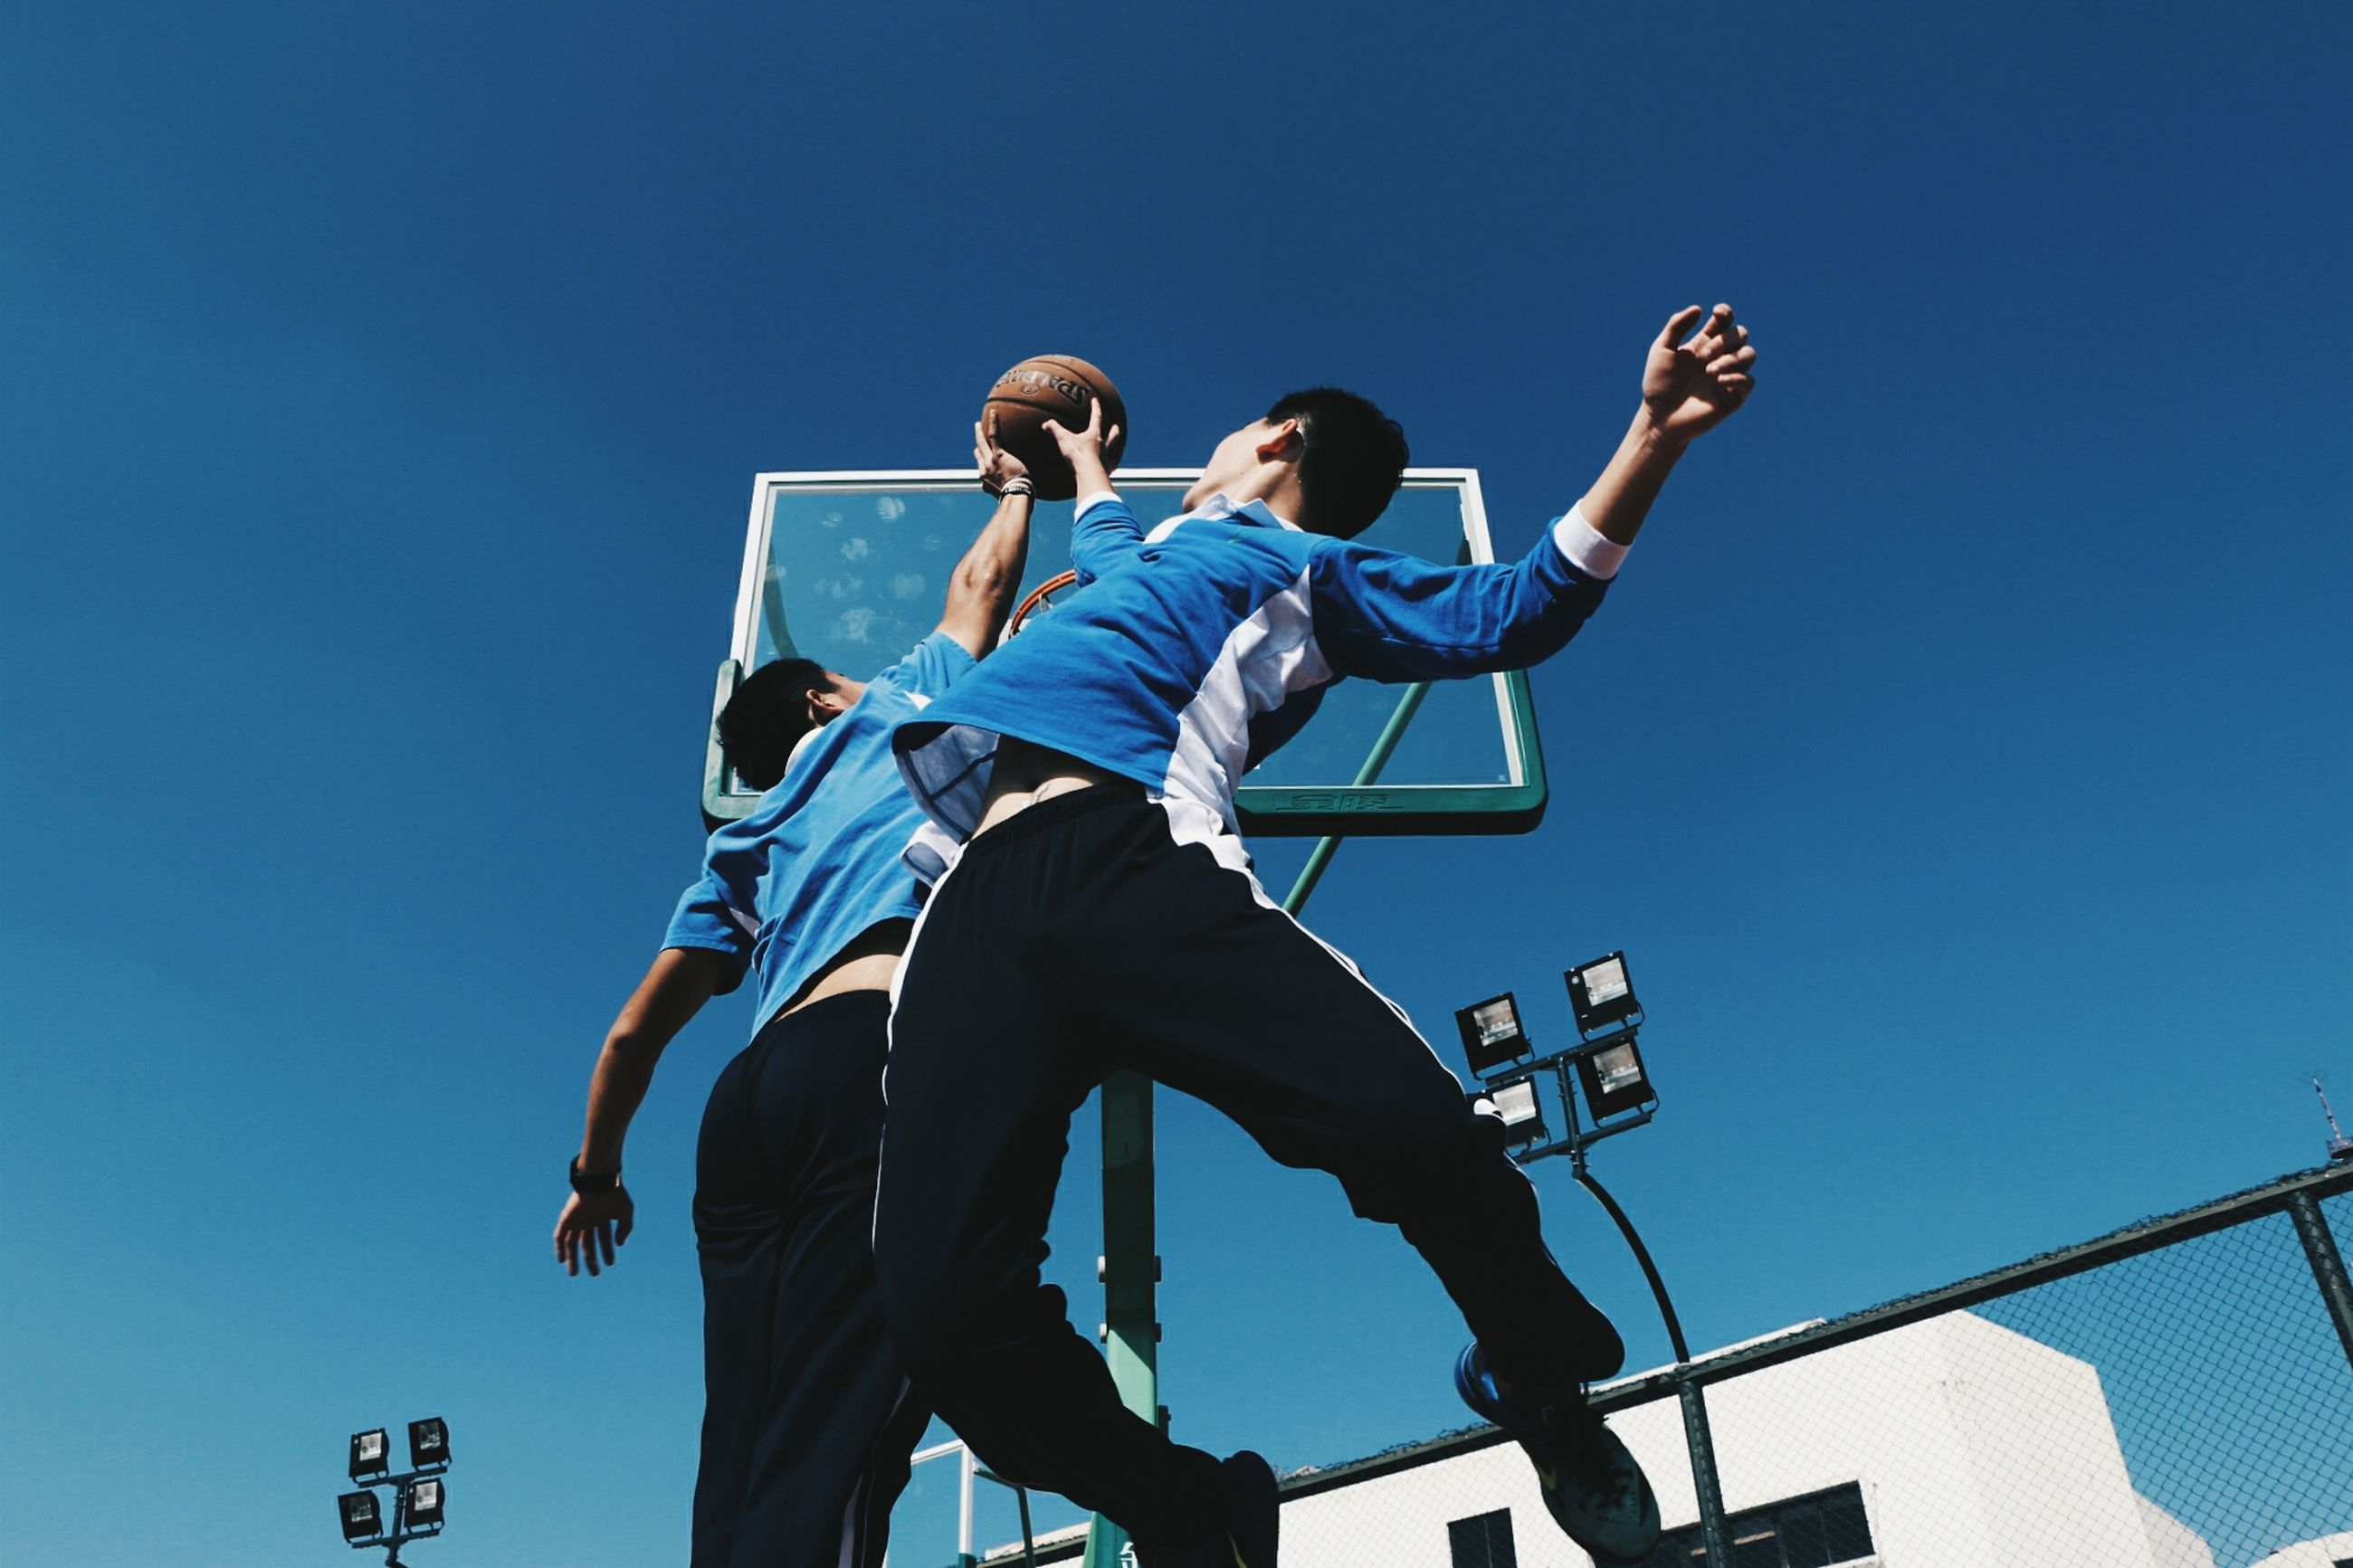 low angle view, blue, jumping, leisure activity, friendship, sport, activity, full length, men, fun, two people, motion, lifestyles, sky, arts culture and entertainment, women, outdoors, stunt, people, real people, togetherness, human body part, young adult, athlete, sportsman, competition, cheerful, adult, day, adults only, sports event, golfer, motorsport